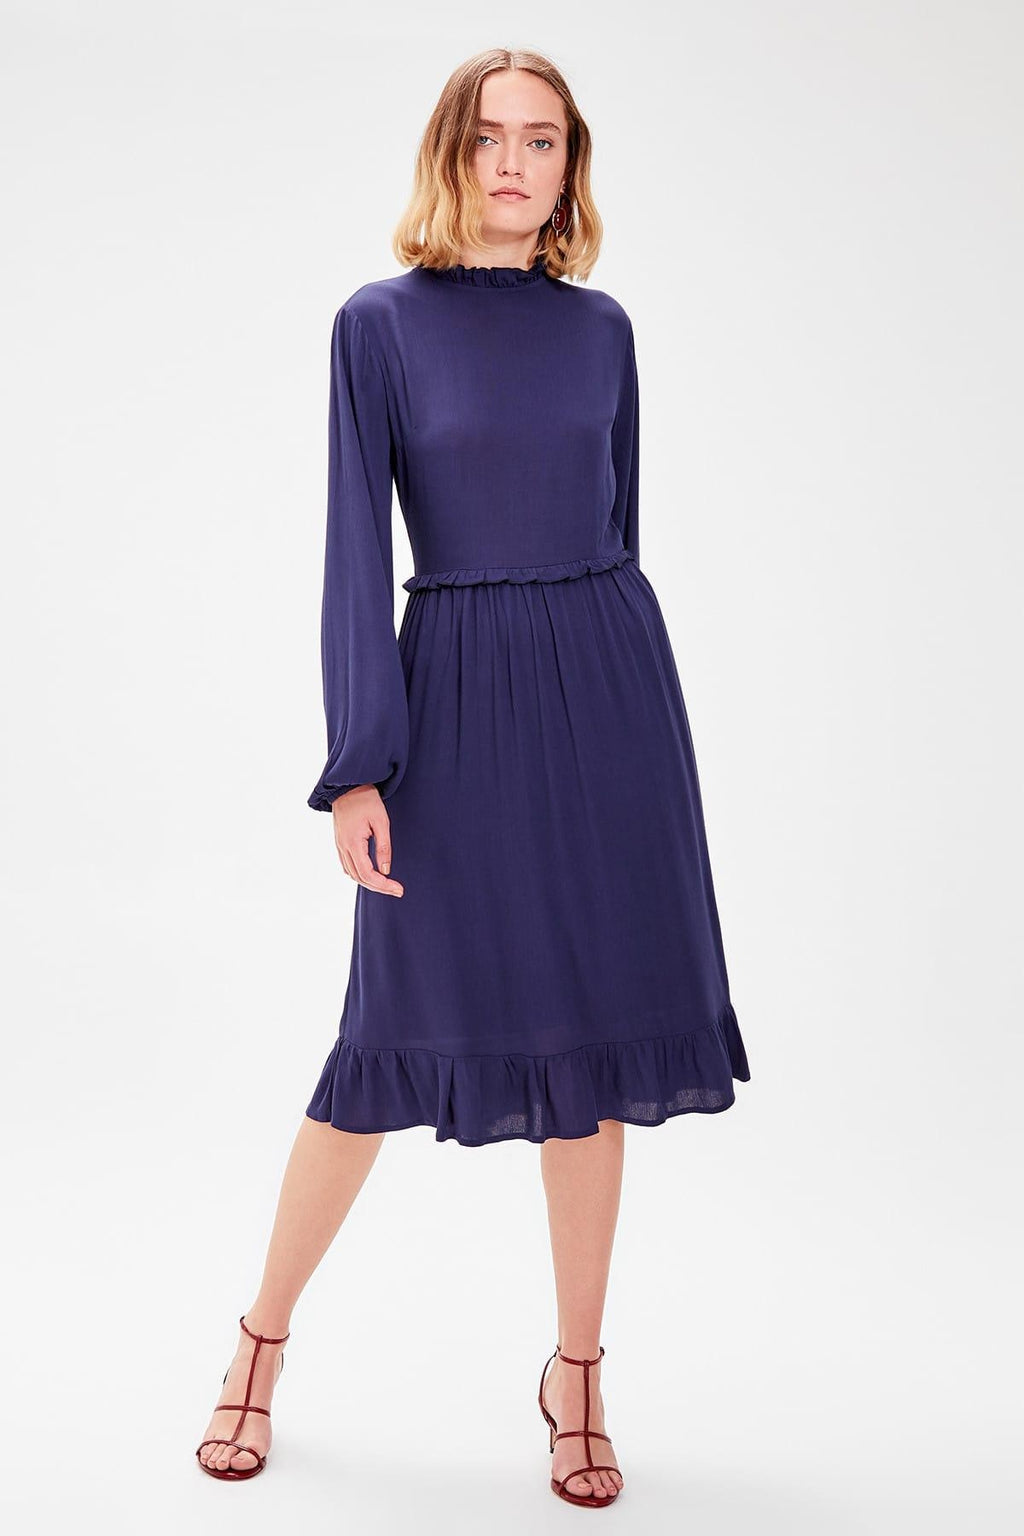 Navy Blue Ruffle Detail Dress - emuuz.com